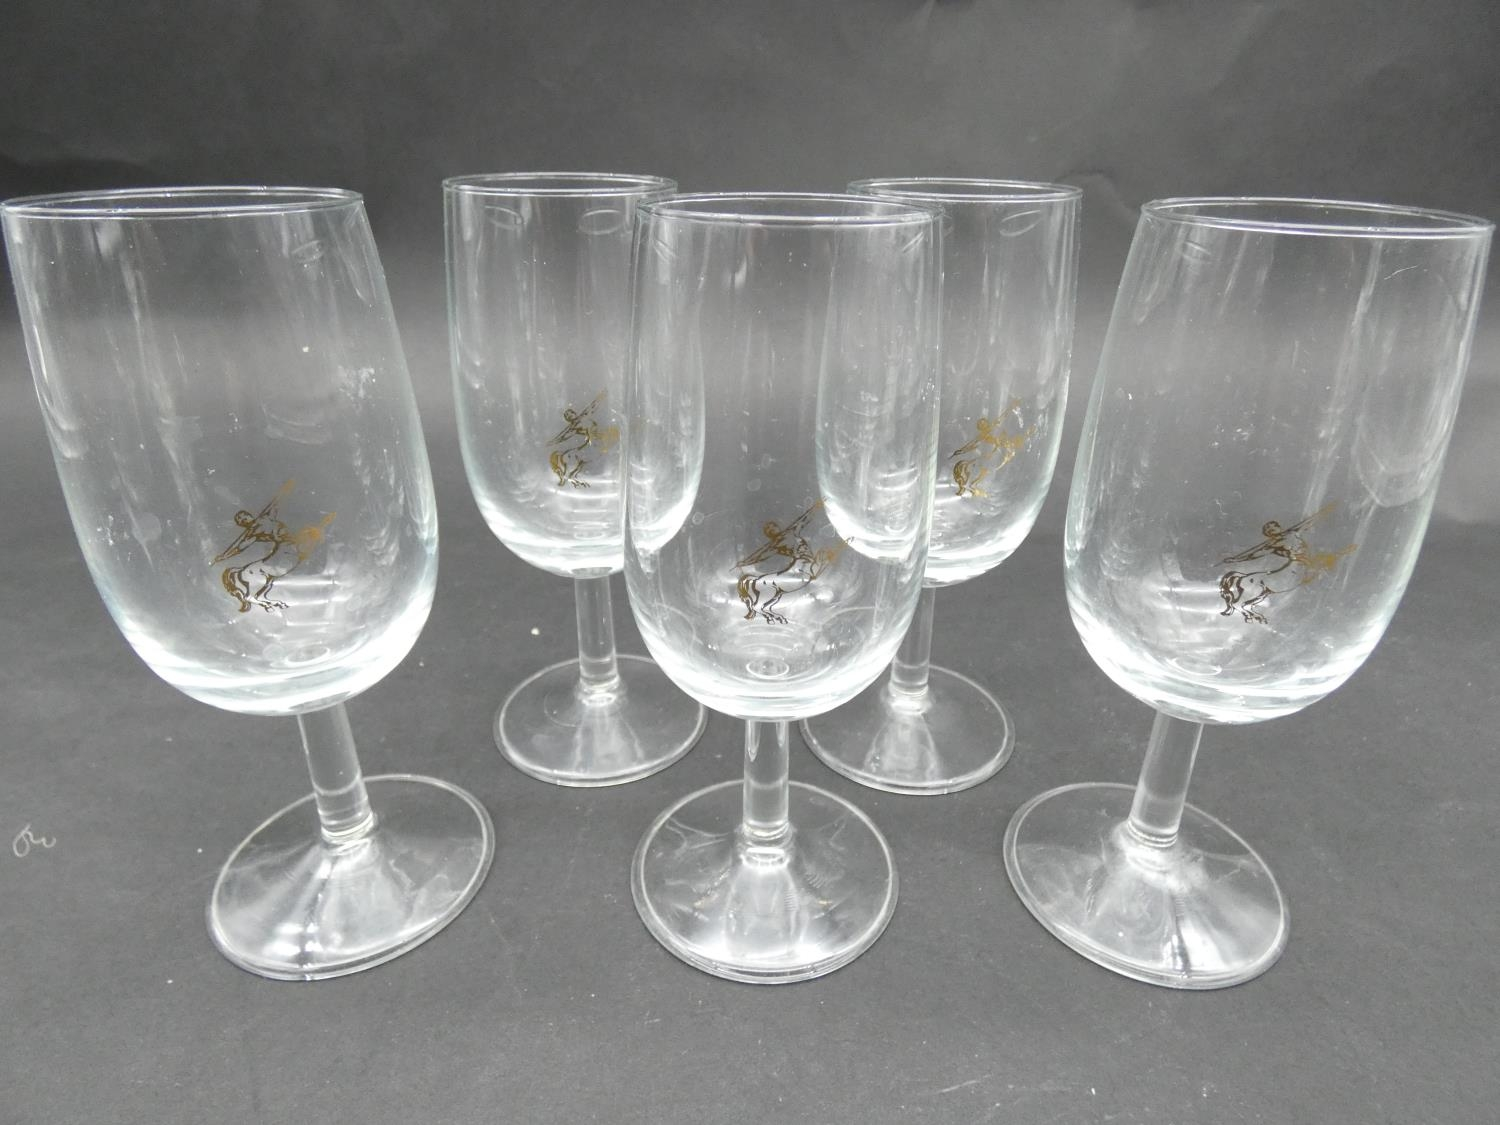 A collection of glasses. Including a set of five sherry glasses with gilded Orion symbols, along - Image 6 of 14